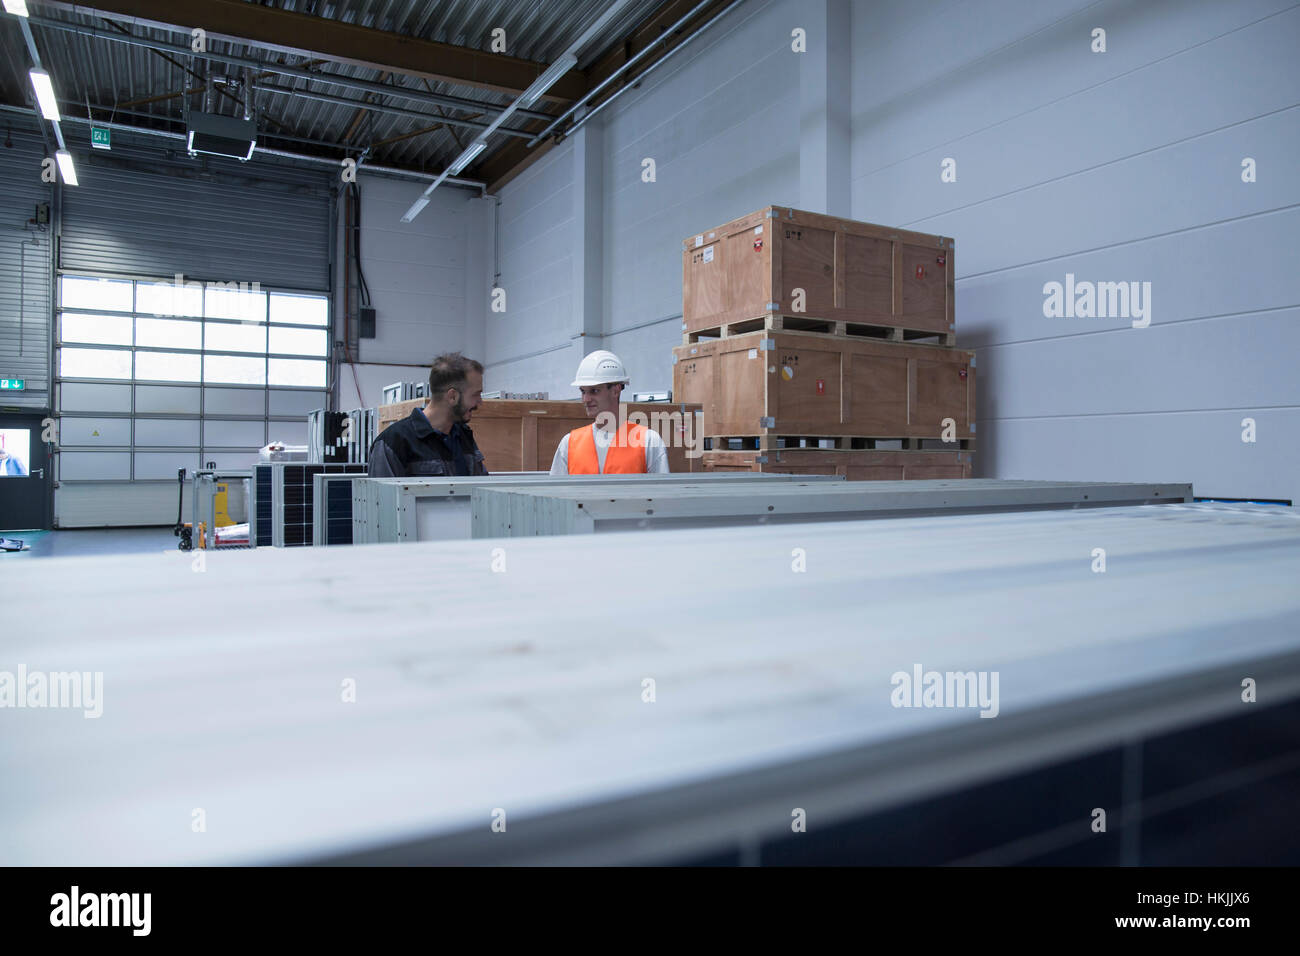 Store workers working in a distribution warehouse, Freiburg im Breisgau, Baden-Württemberg, Germany - Stock Image